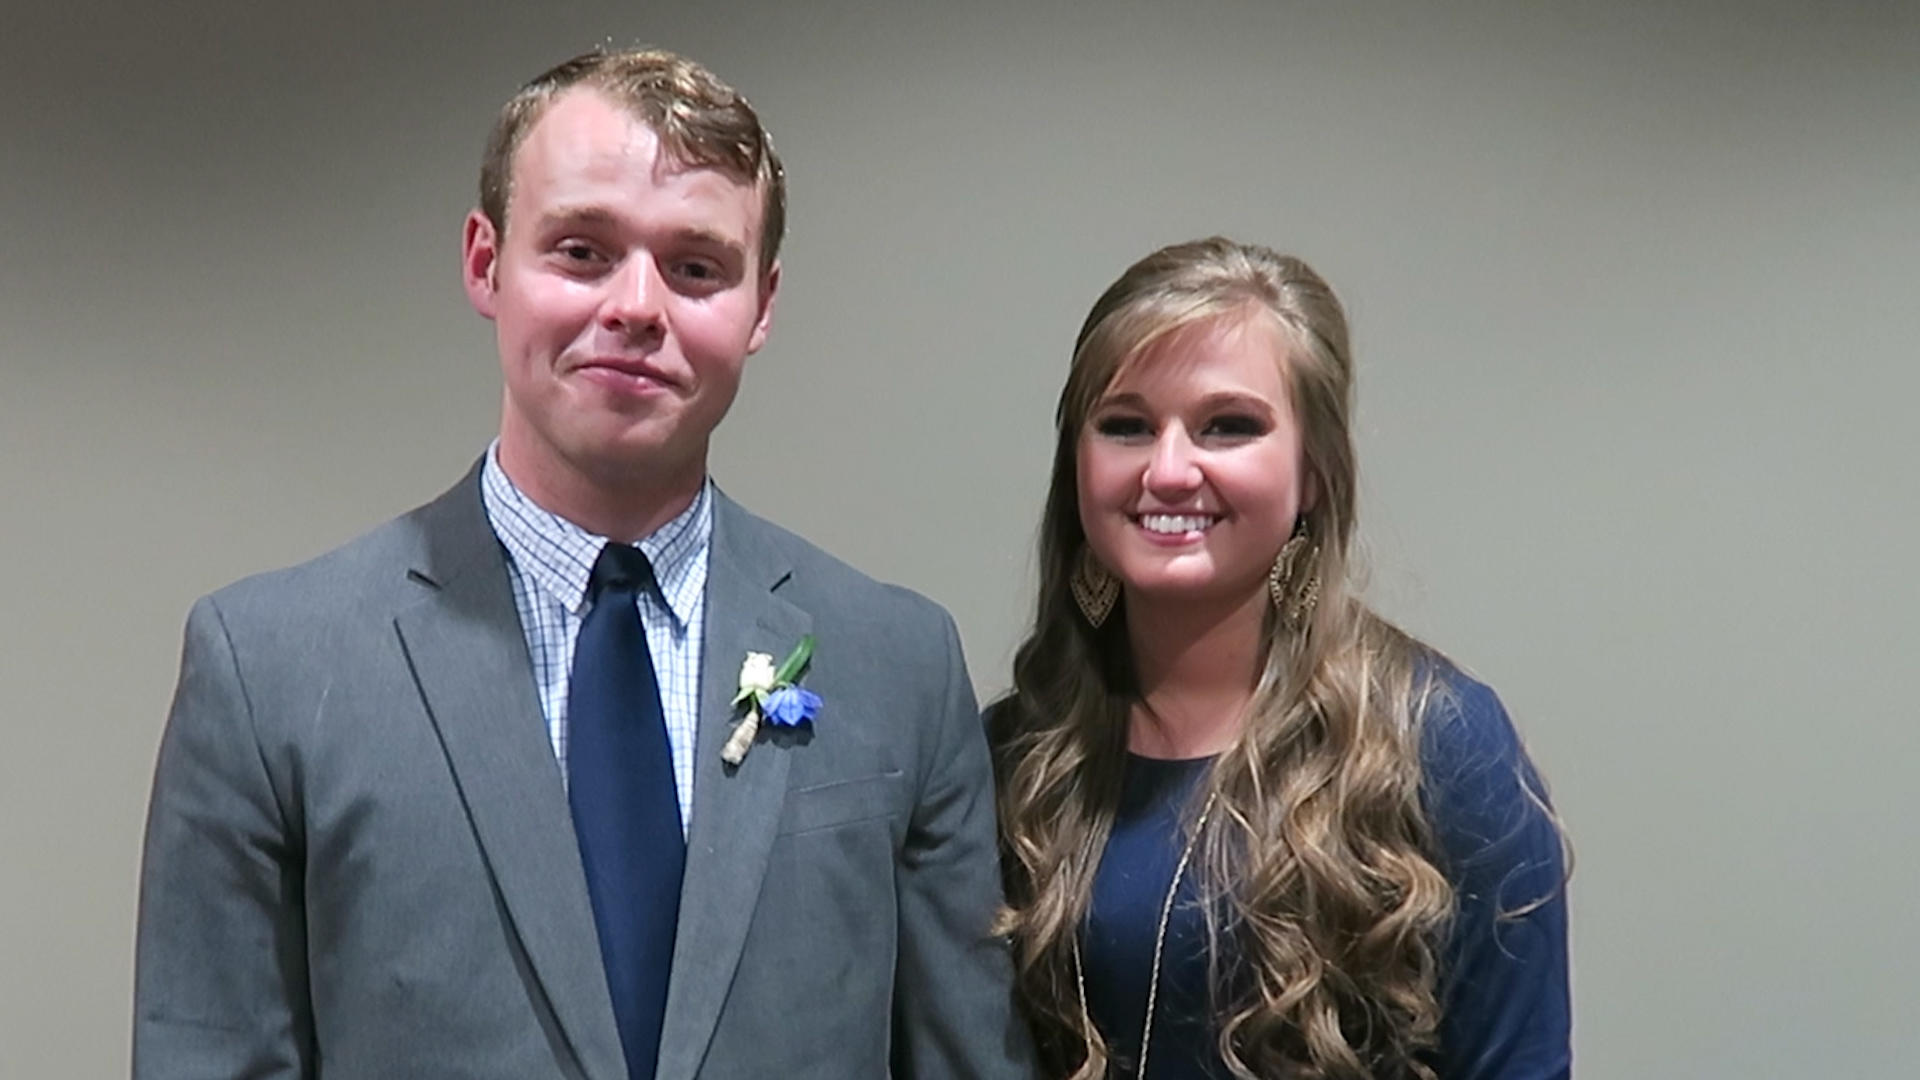 Joseph Duggar Is Engaged to Kendra Caldwell